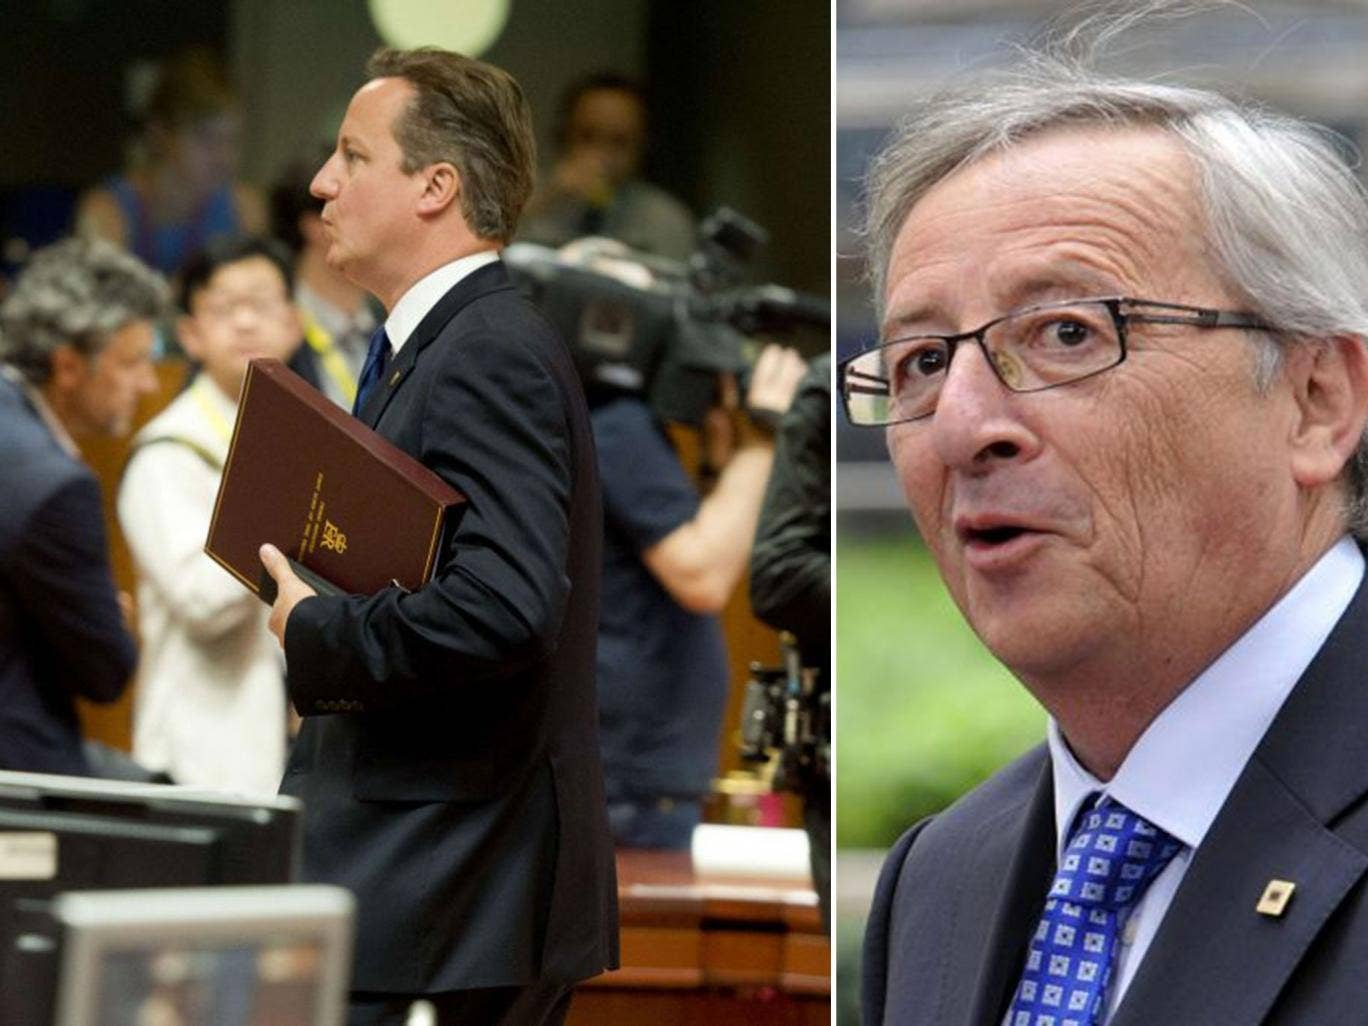 Mr Cameron's uncompromising stance over Mr Juncker has strained his relations with some of his natural allies, including Germany's Angela Merkel